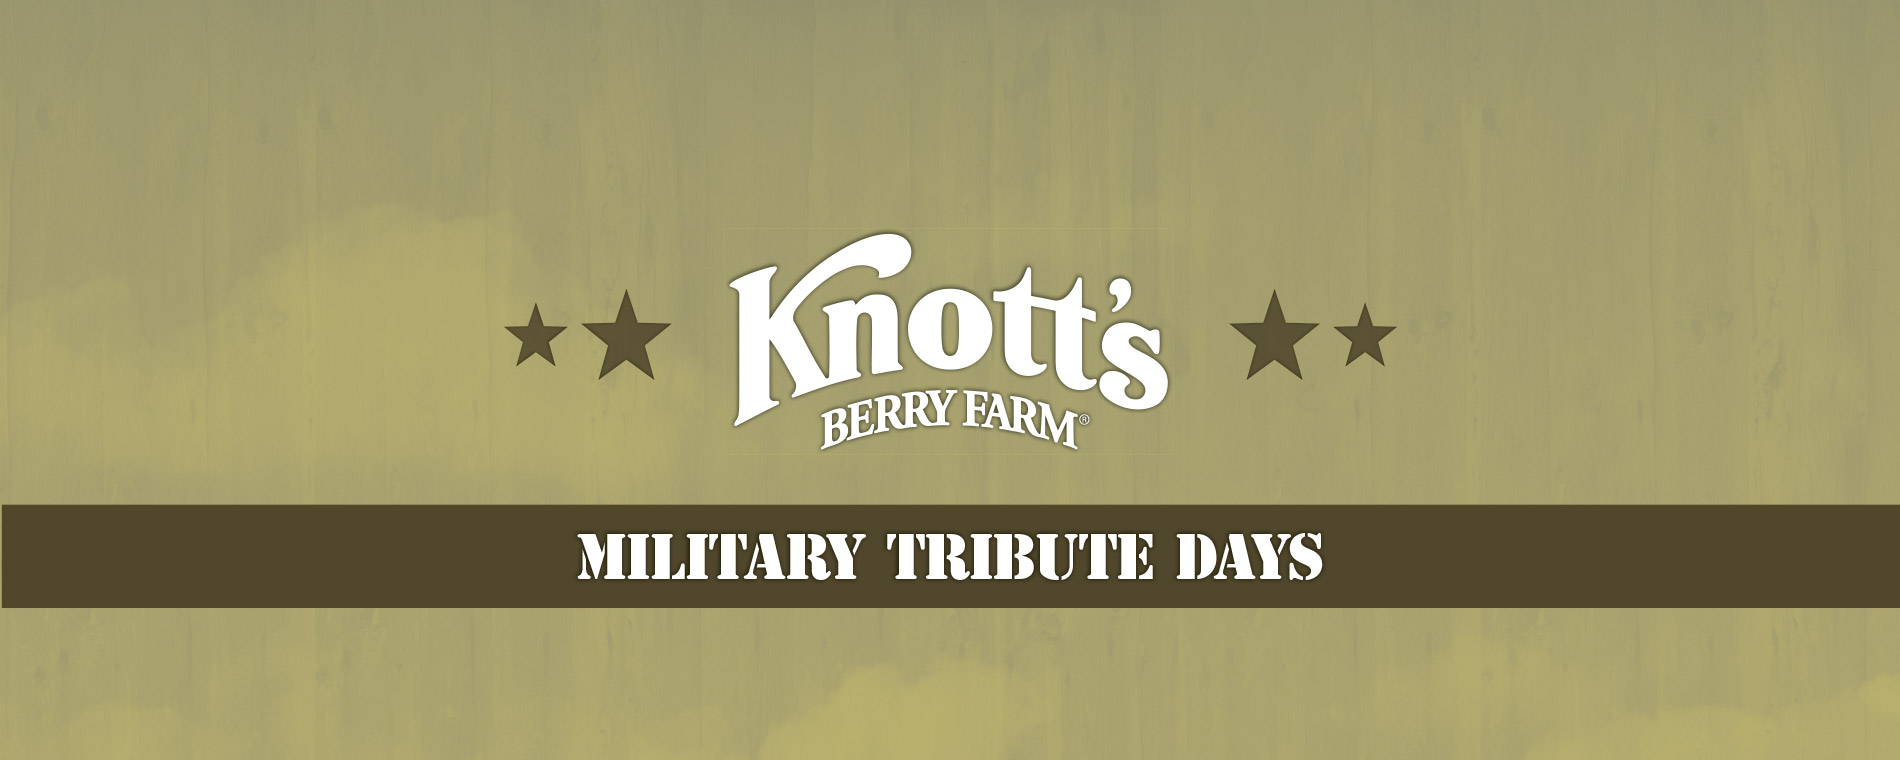 Military Tribute Days